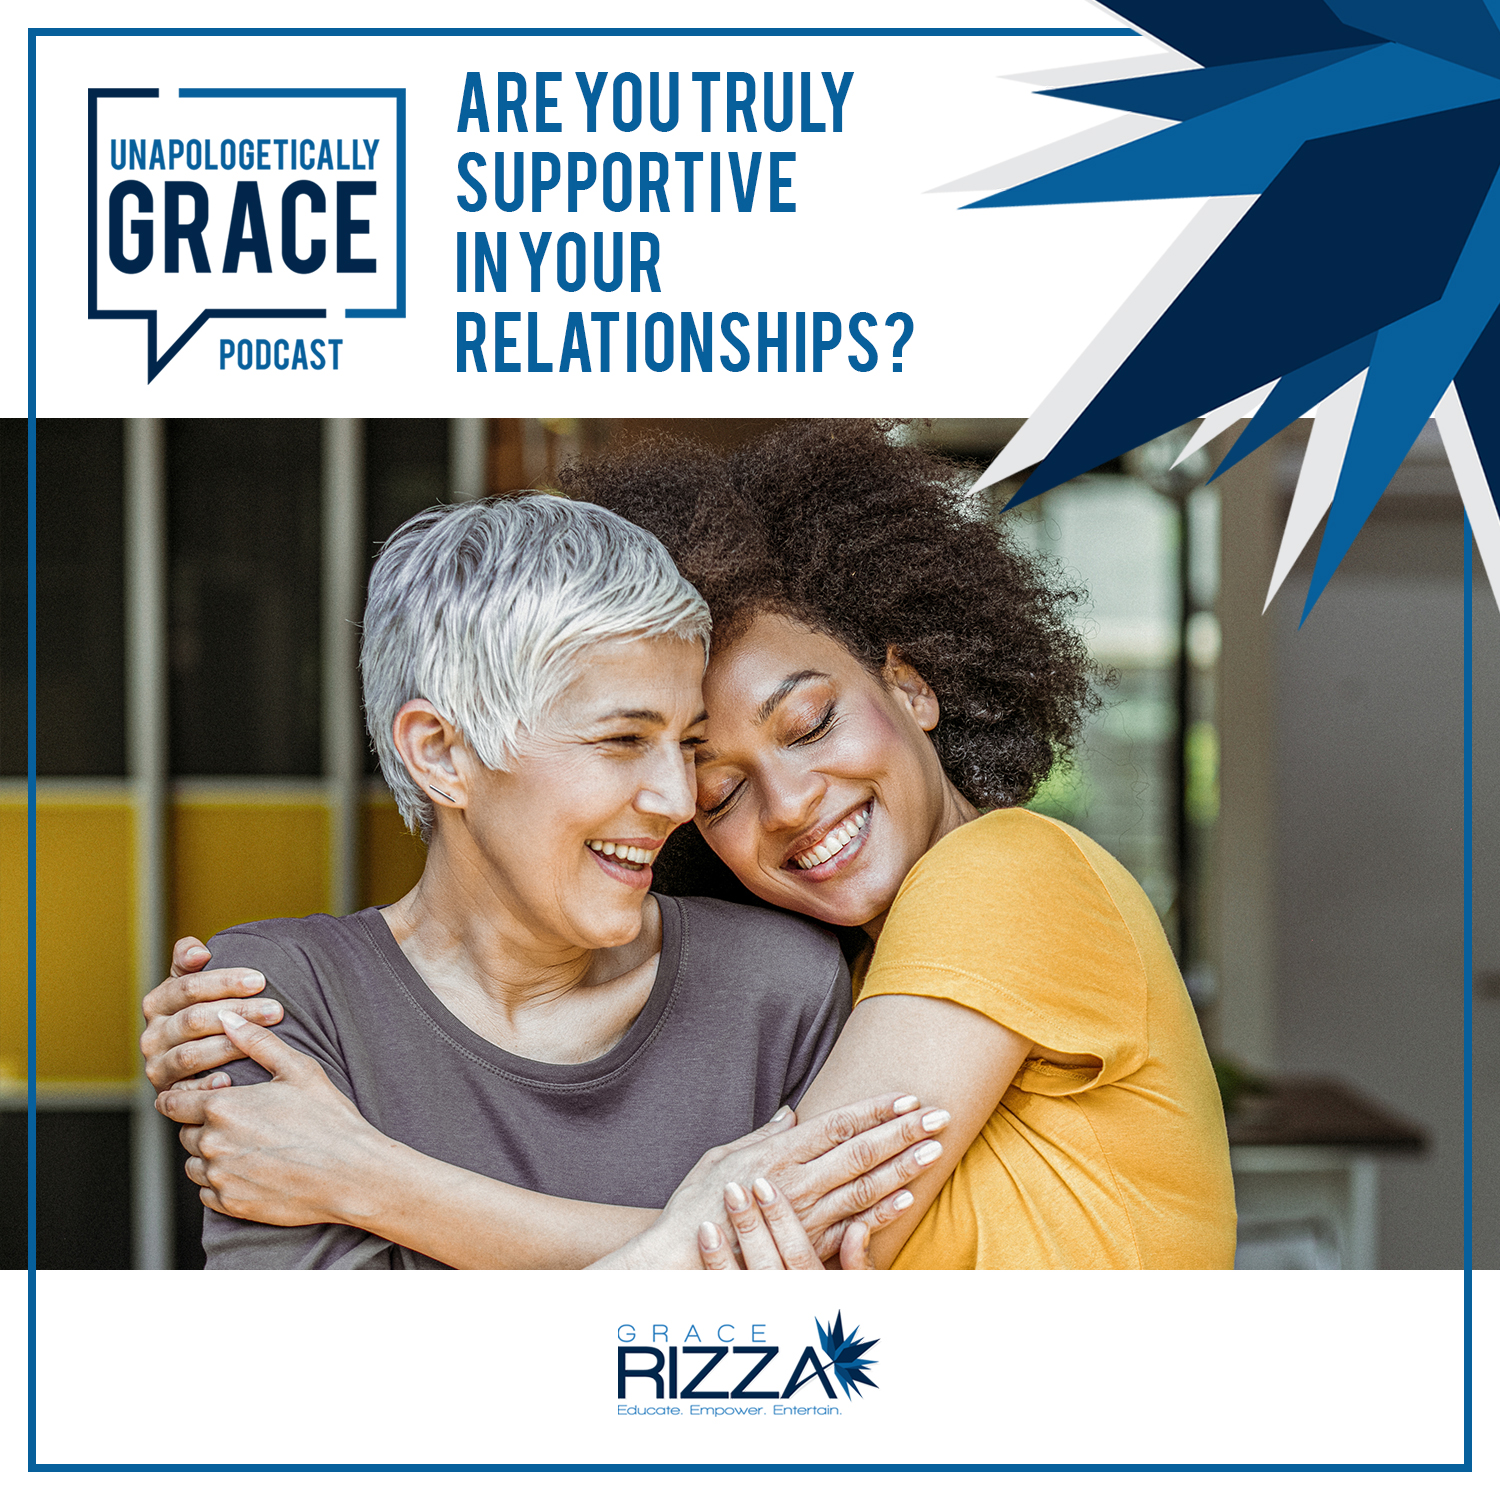 Unapologetically Grace Podcast